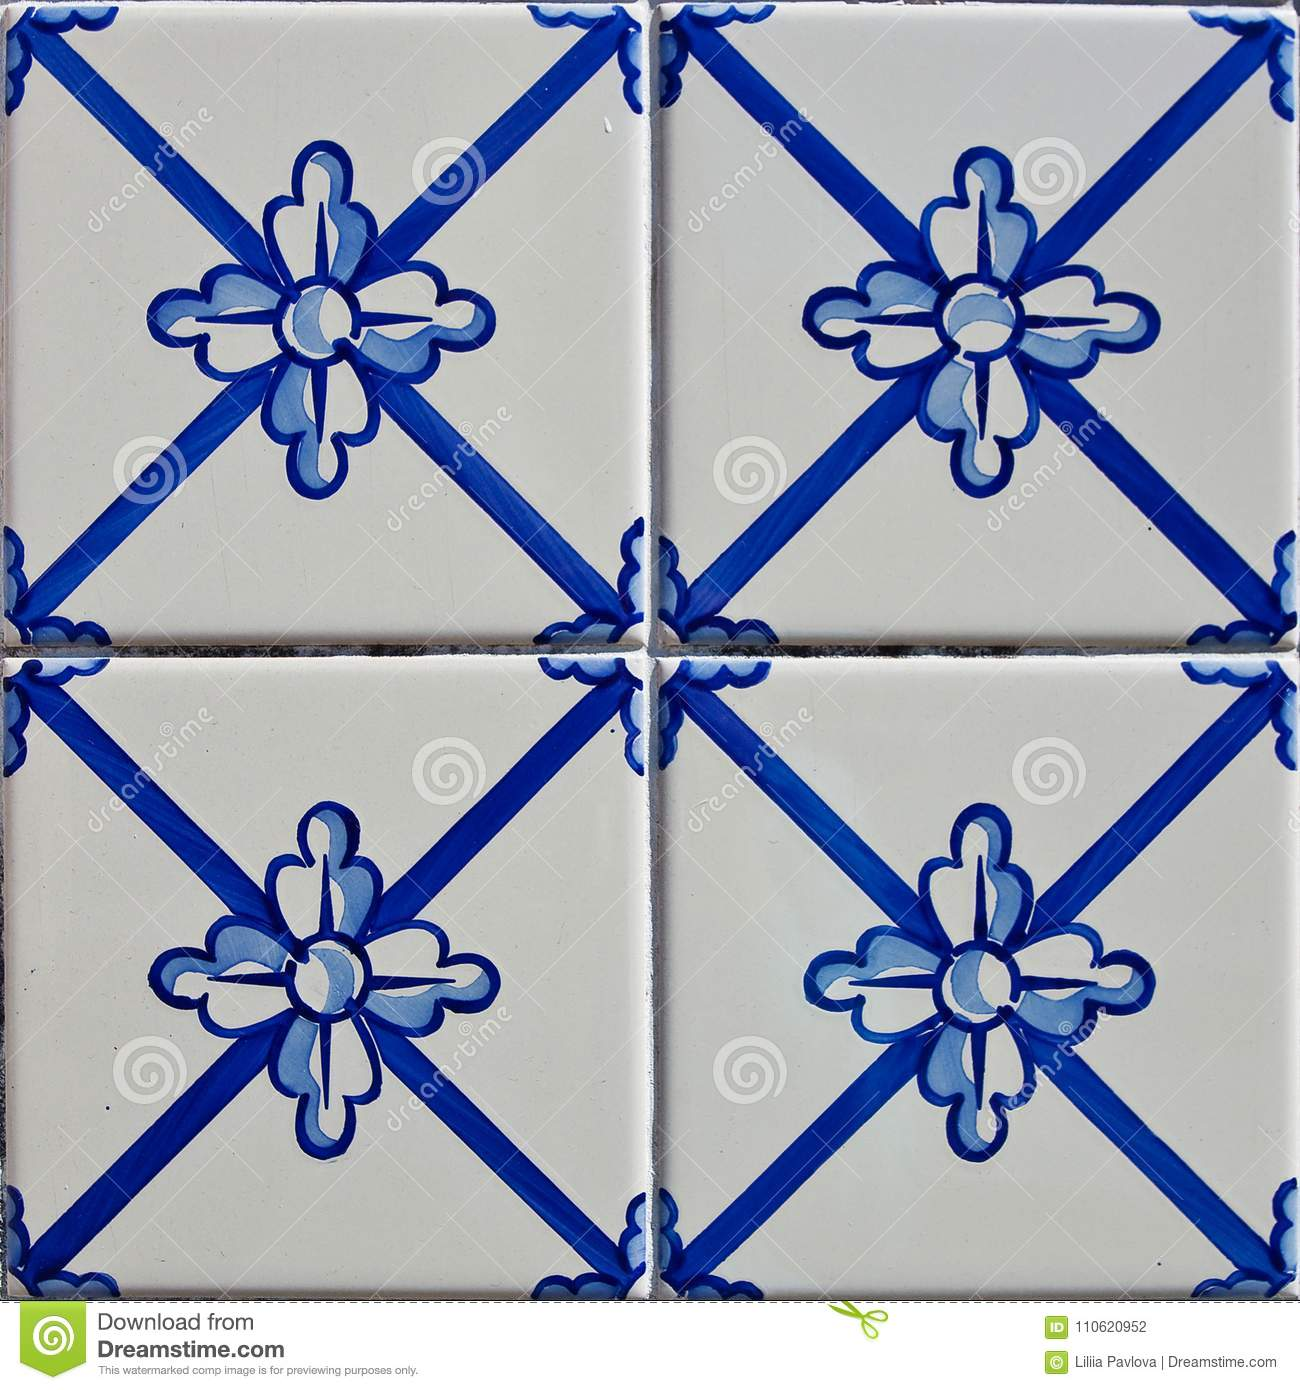 Patterned colored tiles on houses symbol of Lisbon. Abstract, ornament, European authentic style